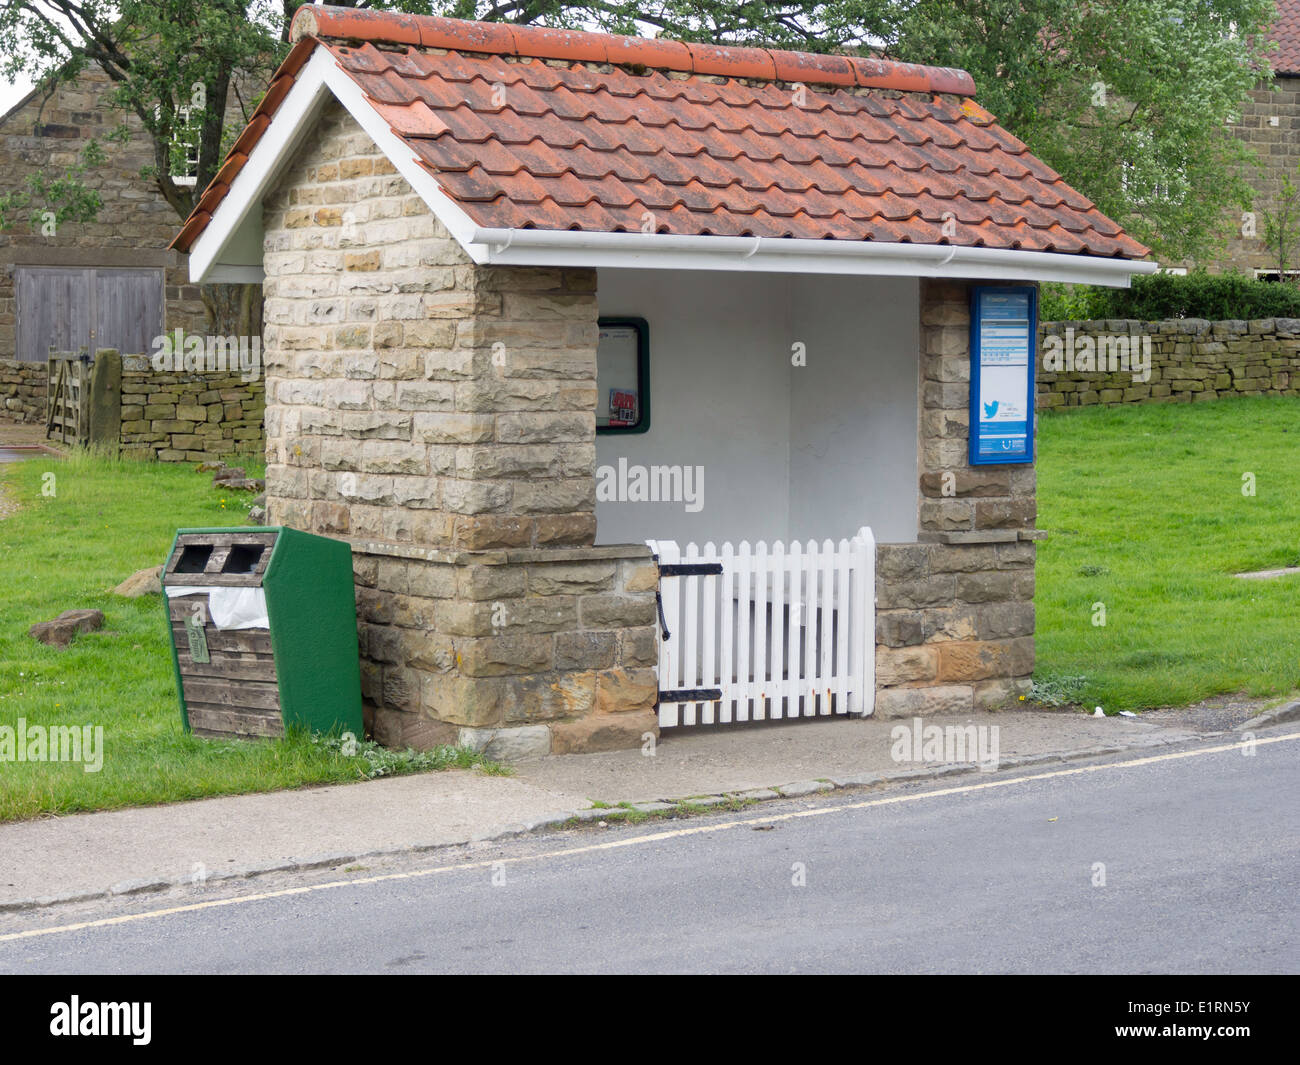 Substantial stone built village bus shelter with local notices inside and a gate to prevent sheep from entering - Stock Image